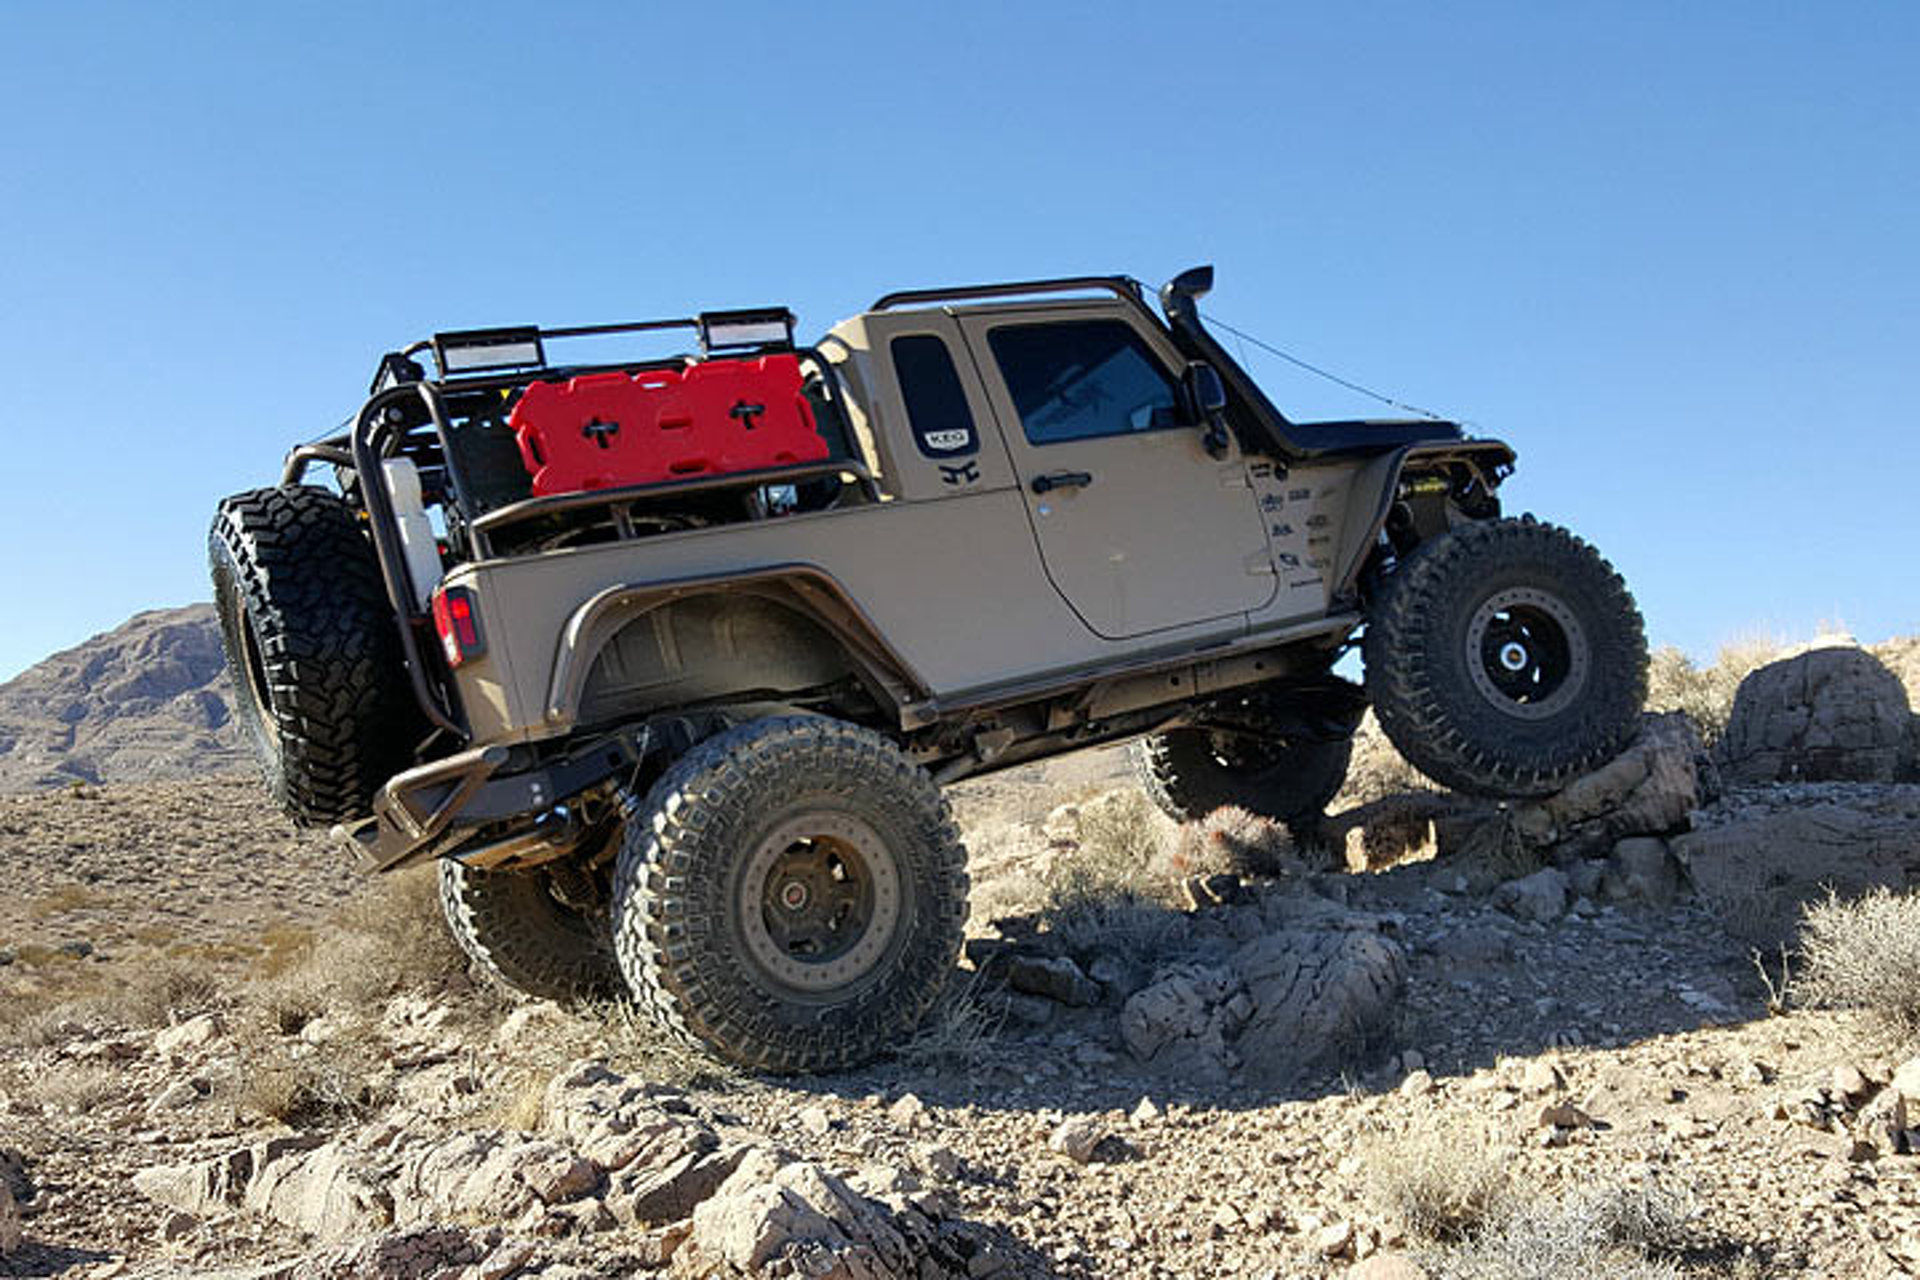 ebay jeep wrangler pickup looks ready to rock 'n roll